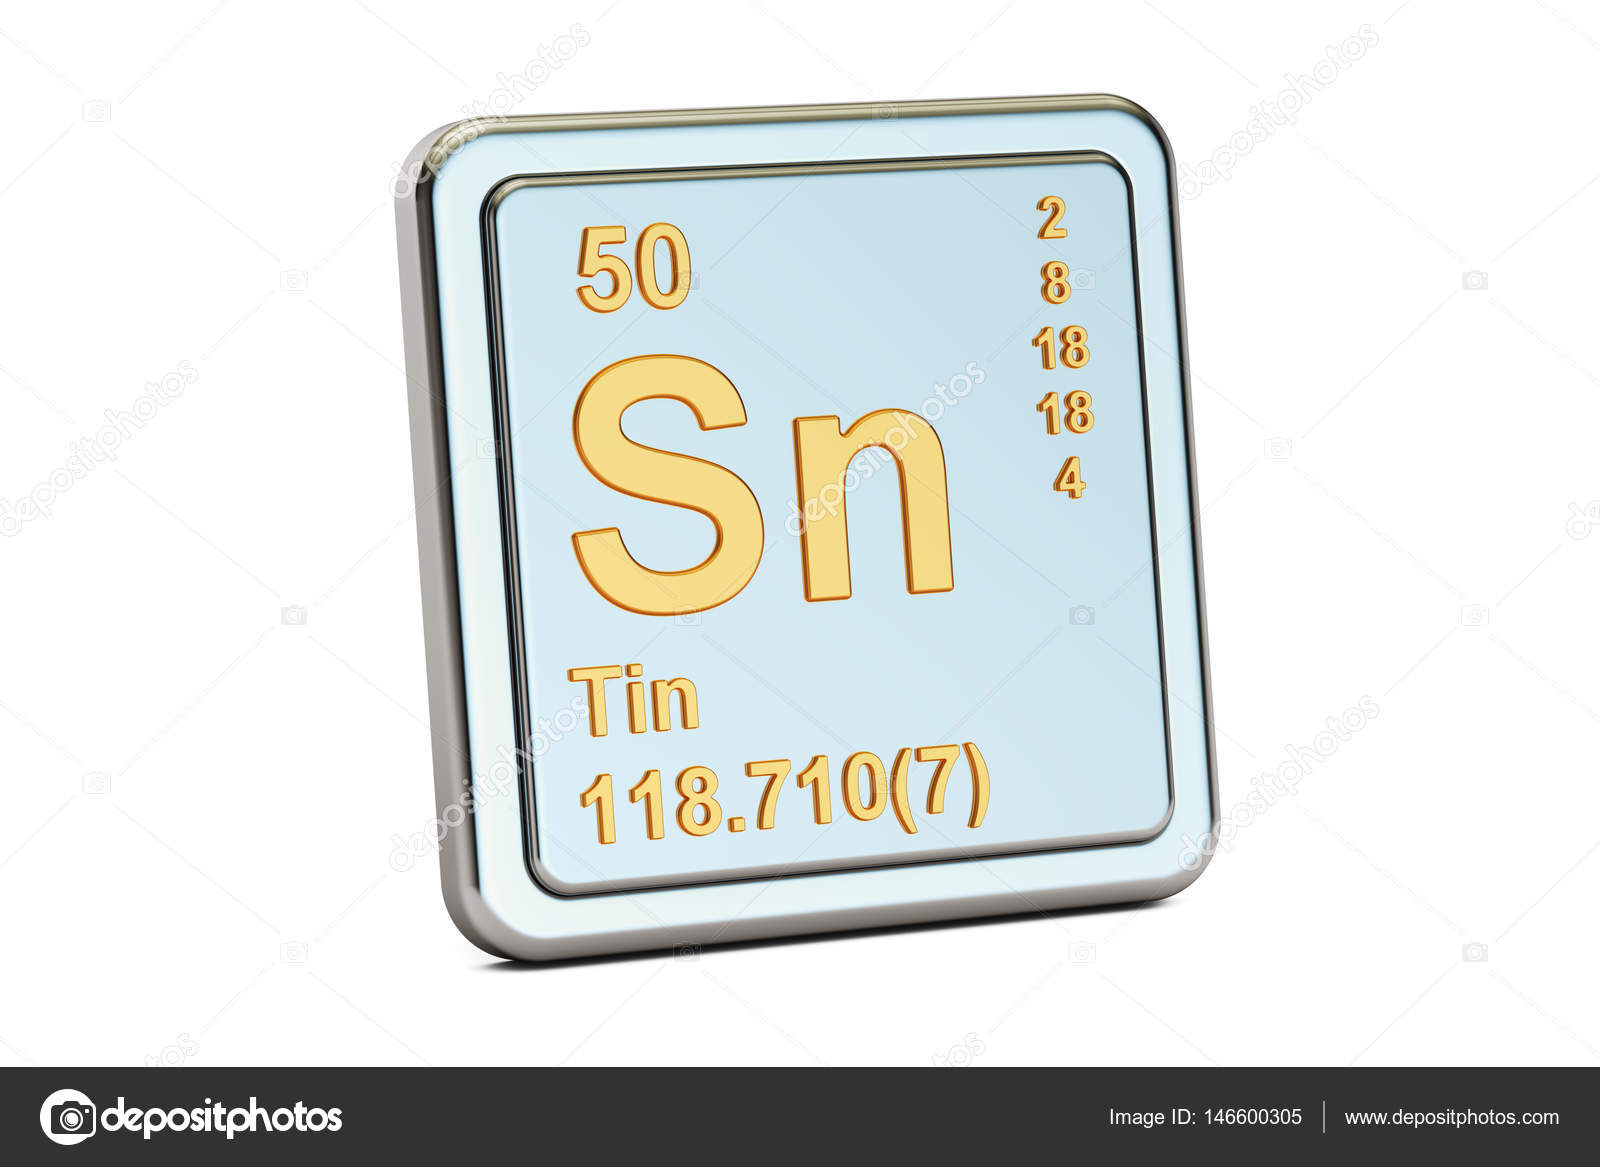 Tin stannum sn chemical element sign 3d rendering stock photo tin stannum sn chemical element sign 3d rendering isolated on white background photo by alexlmx biocorpaavc Image collections